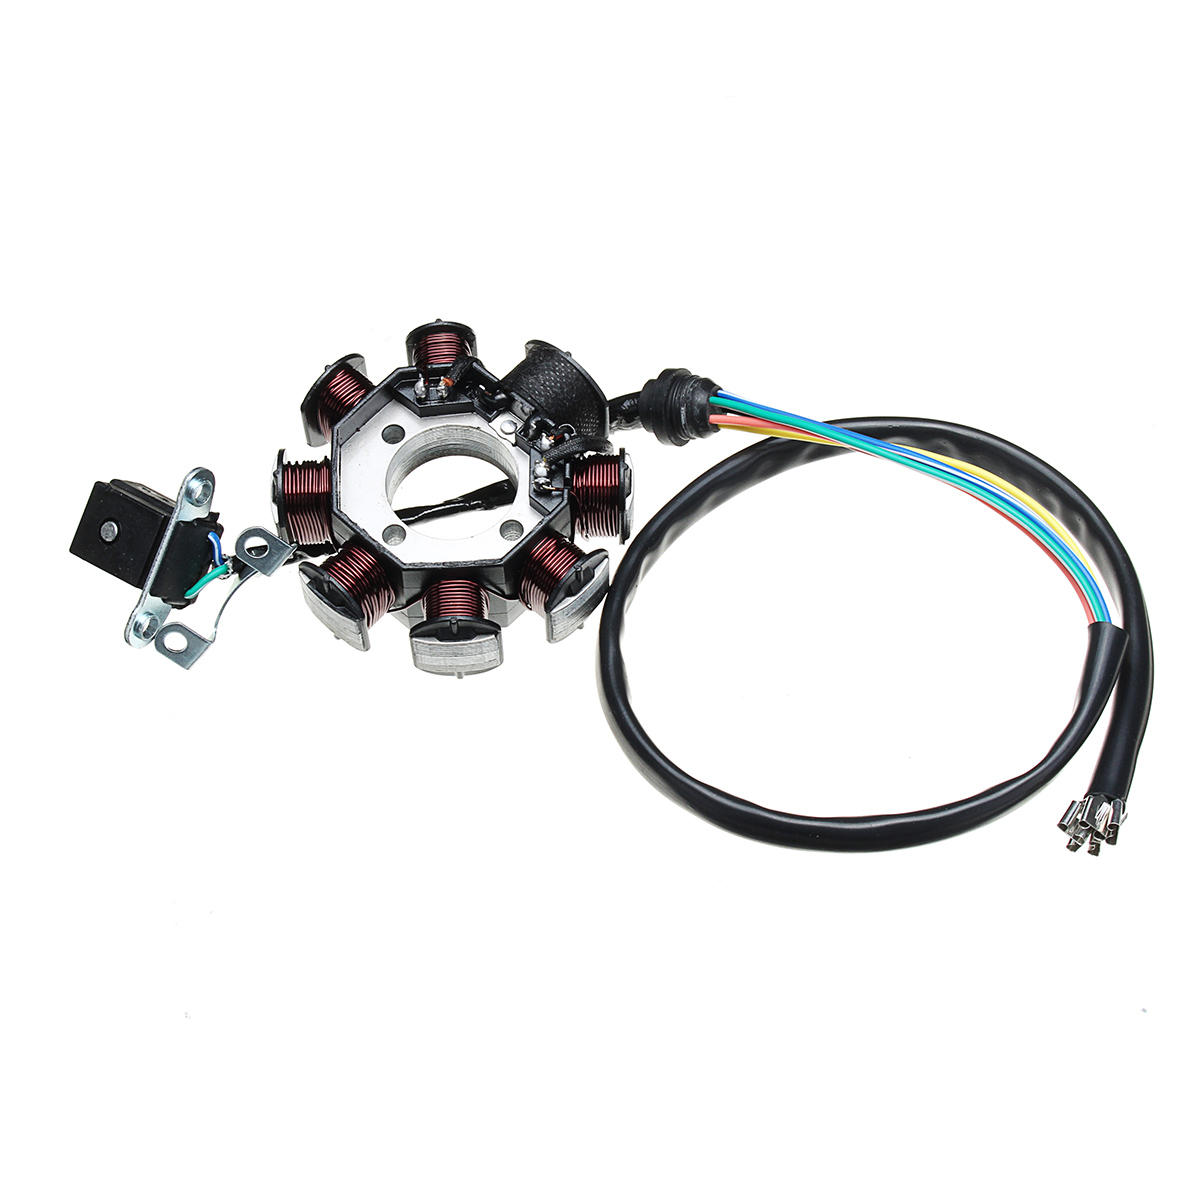 Electric Wiring Harness Wire Loom Cdi Motor Stator Full Set For Atv Quad 150 200 250cc Sale